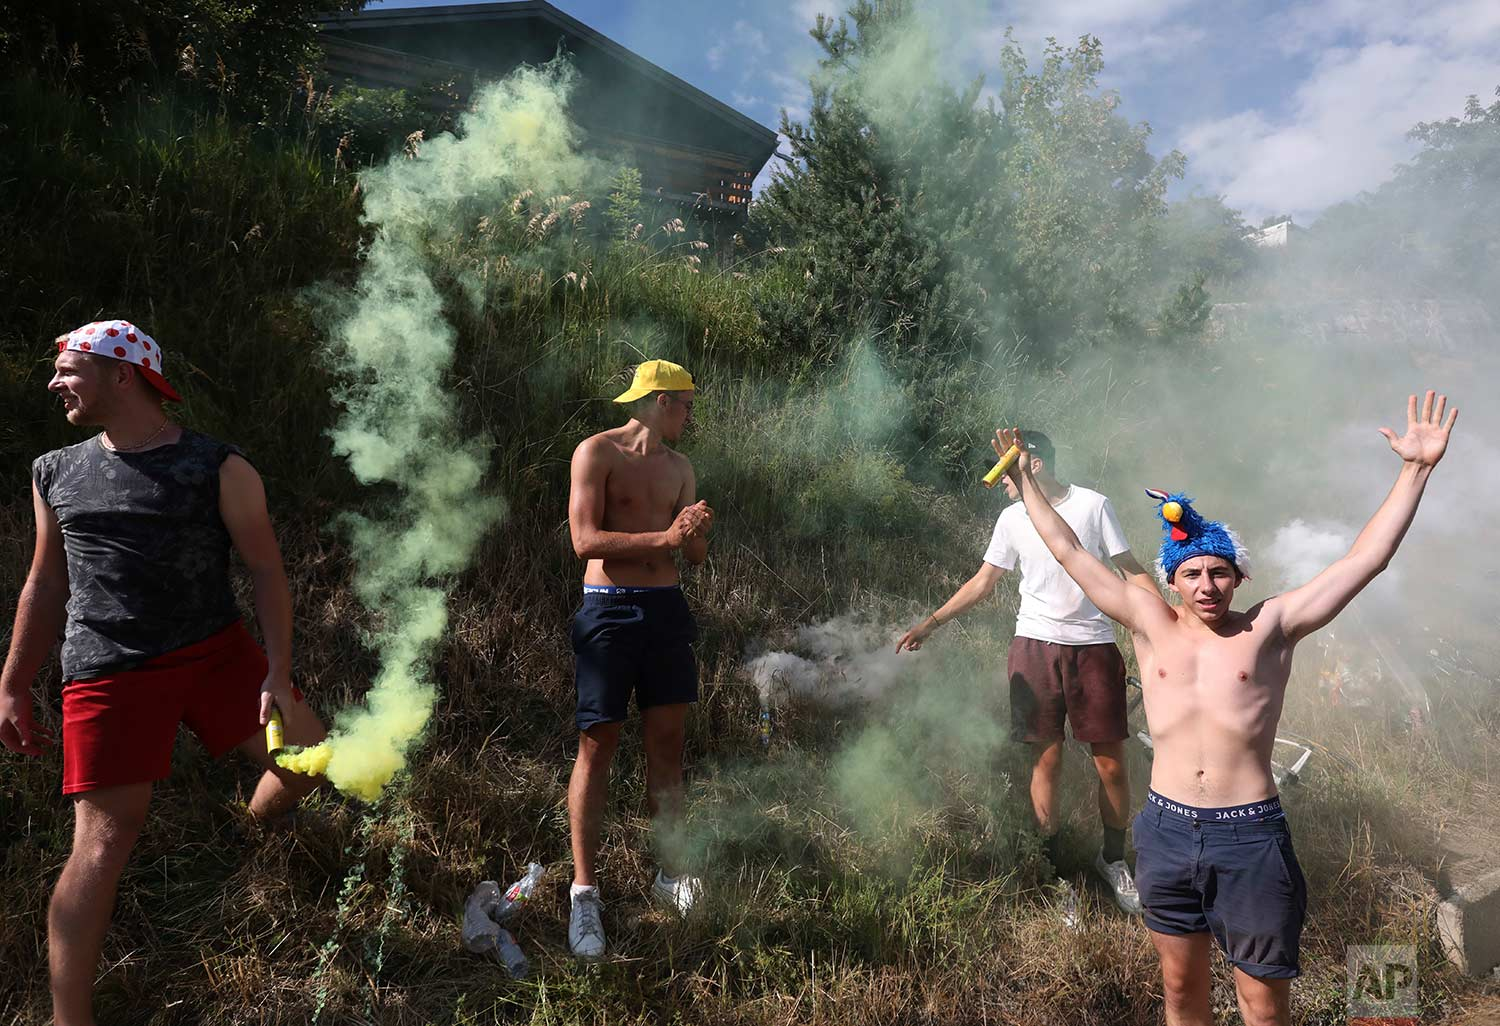 Fans set off flares as the group of leaders passes during the twelfth stage of the Tour de France cycling race over 175.5 kilometers (109 miles) with start in Bourg-Saint-Maurice Les Arcs and Alpe d'Huez, France, Thursday July 19, 2018. (AP Photo/Peter Dejong)